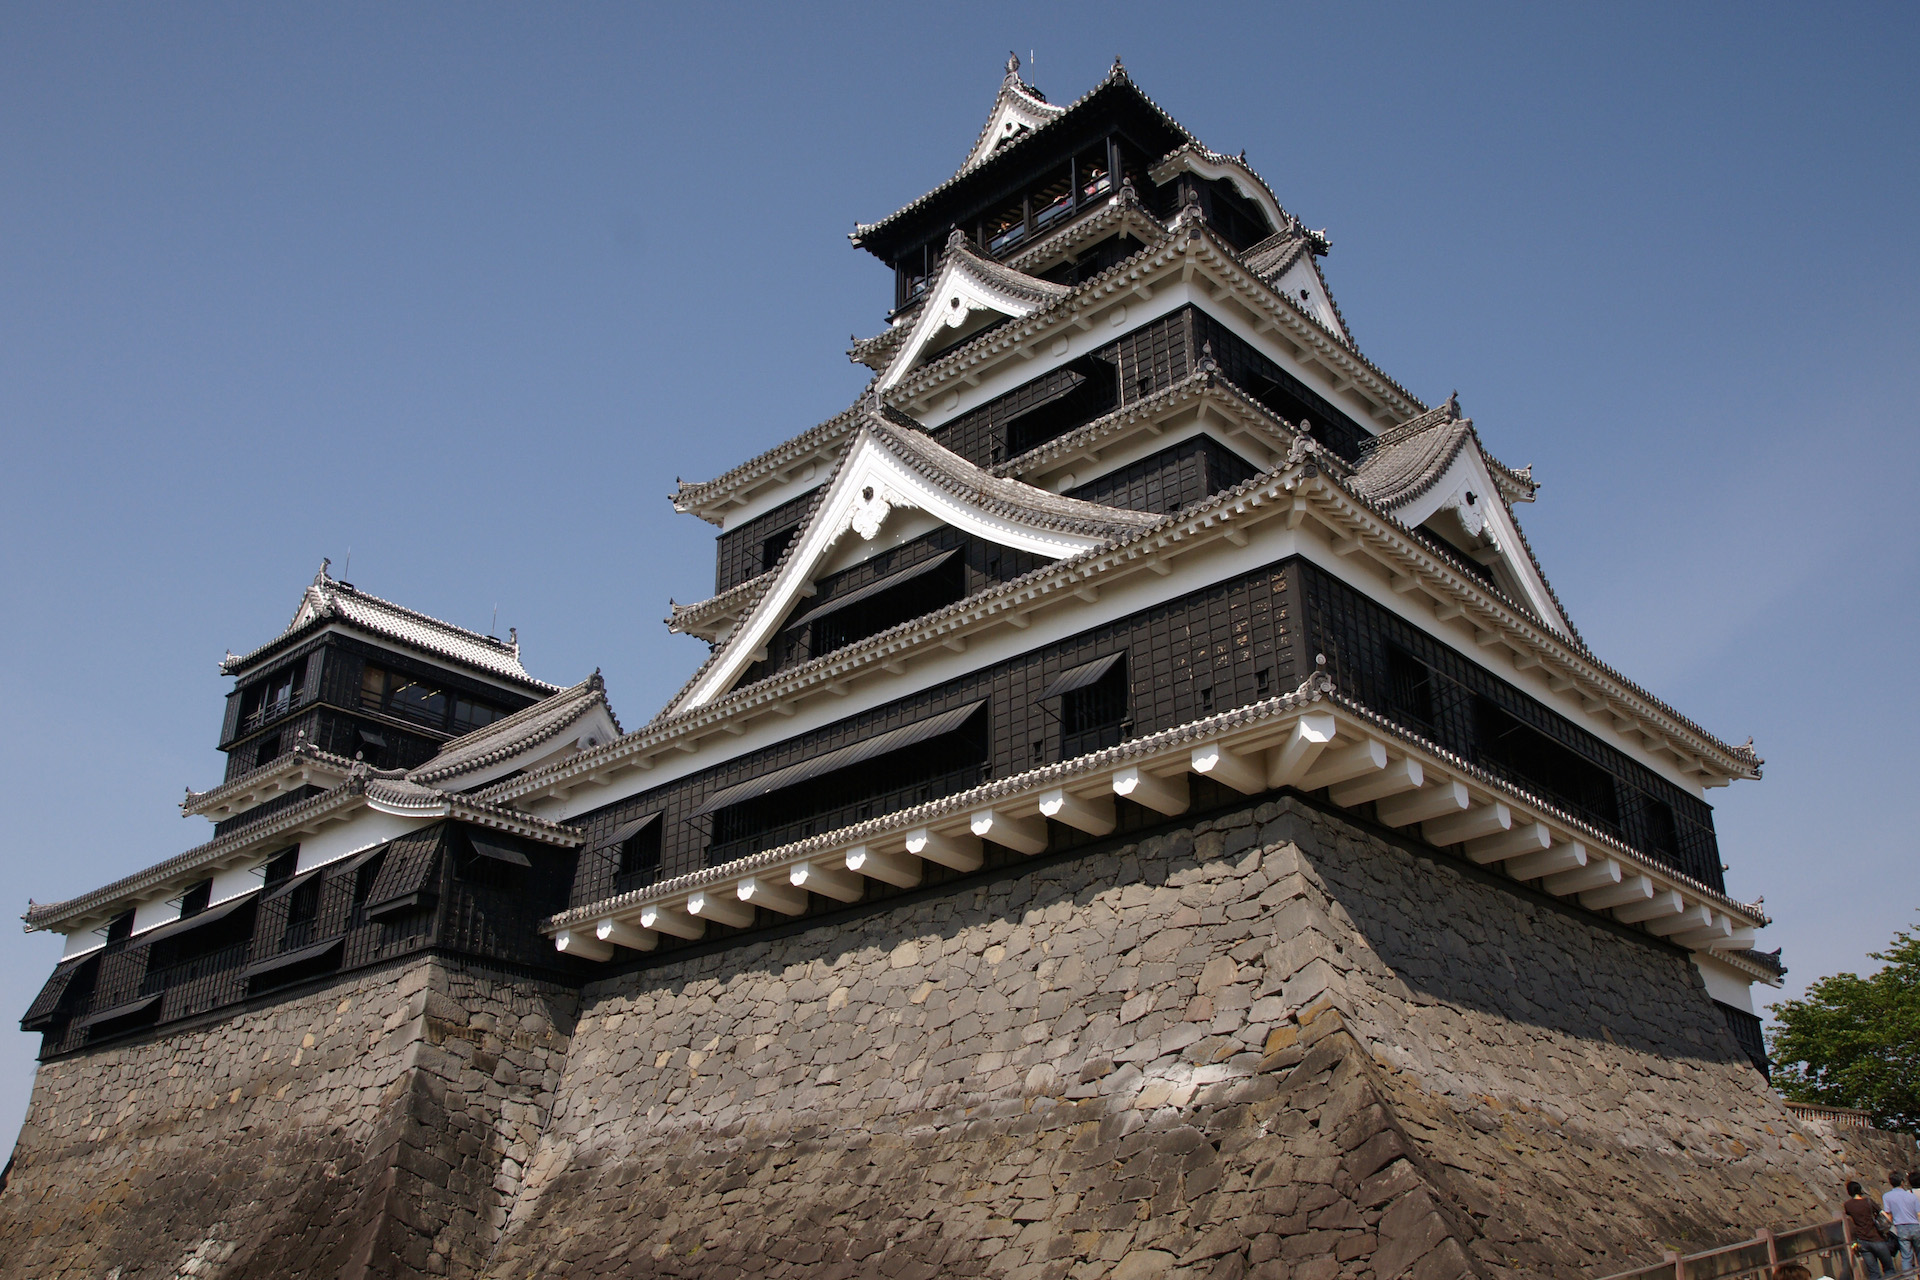 """Kumamoto Castle 05n3200"" by 663highland - 663highland. Licensed under CC BY 2.5 via Commons - https://commons.wikimedia.org/wiki/File:Kumamoto_Castle_05n3200.jpg#/media/File:Kumamoto_Castle_05n3200.jpg"